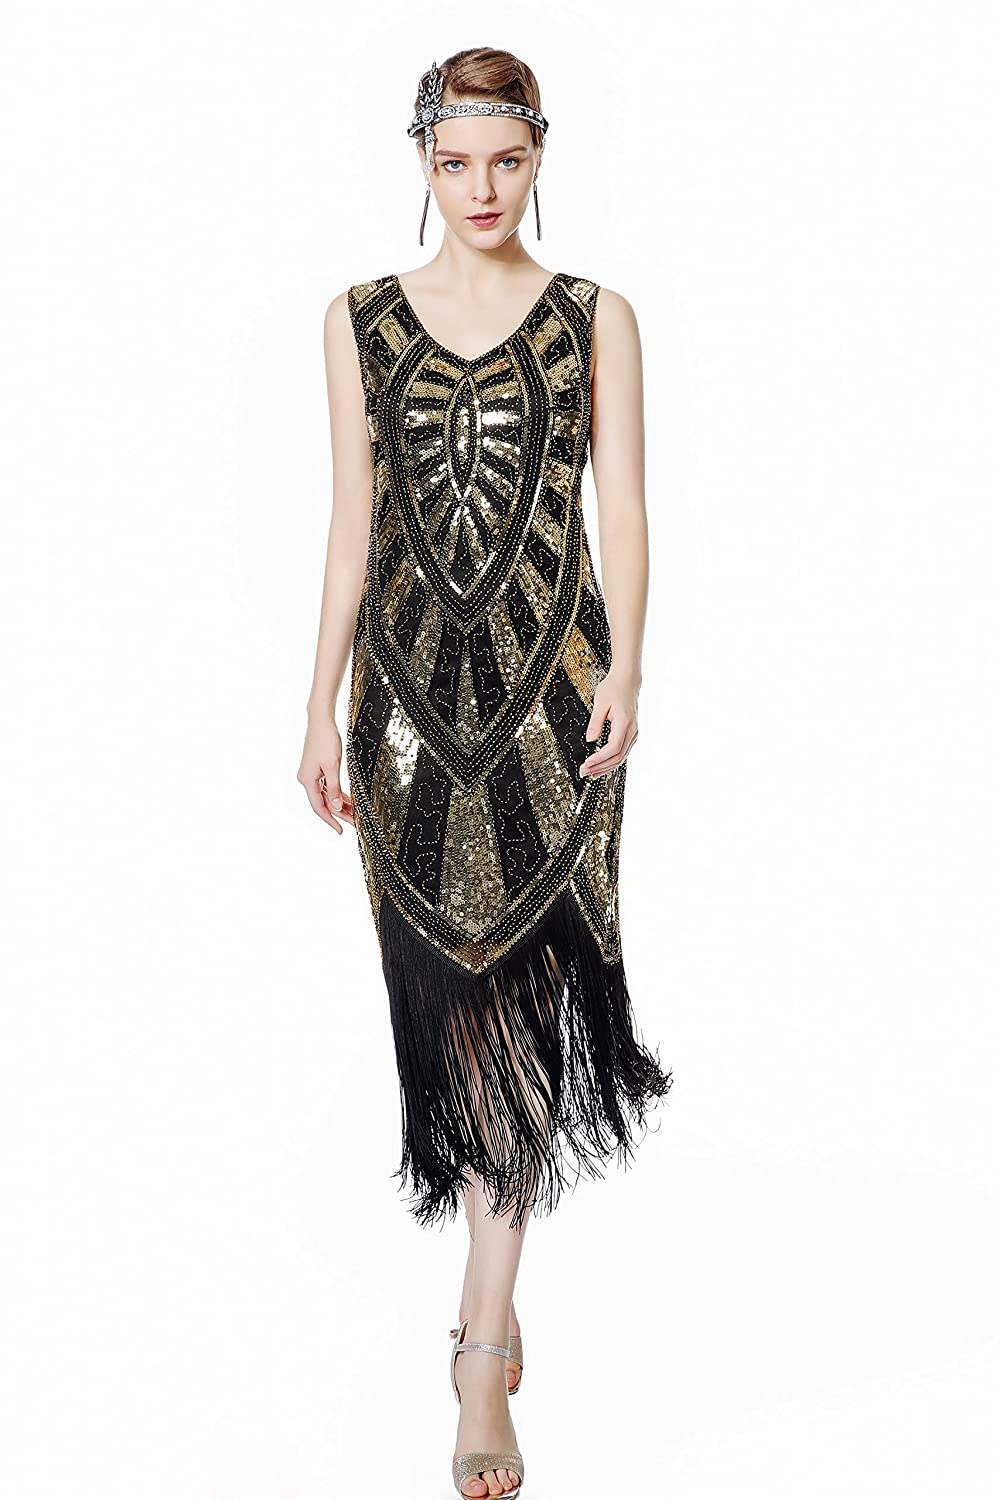 1920s Costumes: Flapper, Great Gatsby, Gangster Girl Metme 1920s Inspired Fringe Embellished Gatsby Flapper Midi Dress Prom Party $50.99 AT vintagedancer.com